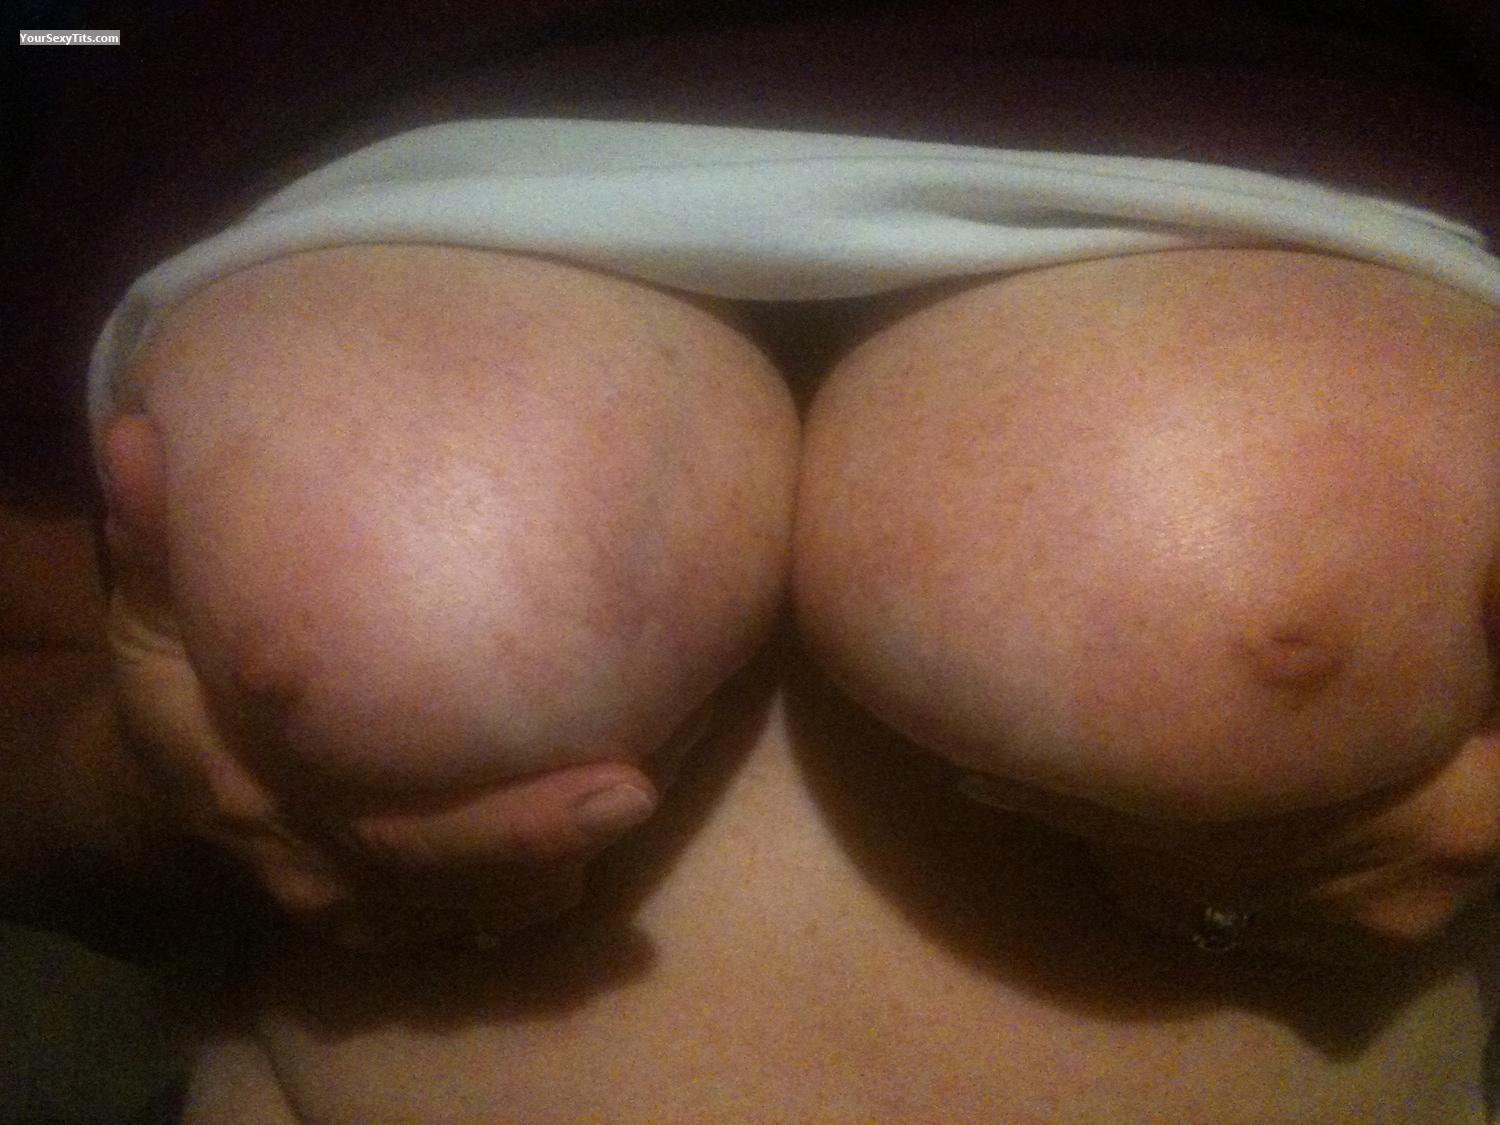 Tit Flash: Big Tits By IPhone - Cavemanforboobs from United States